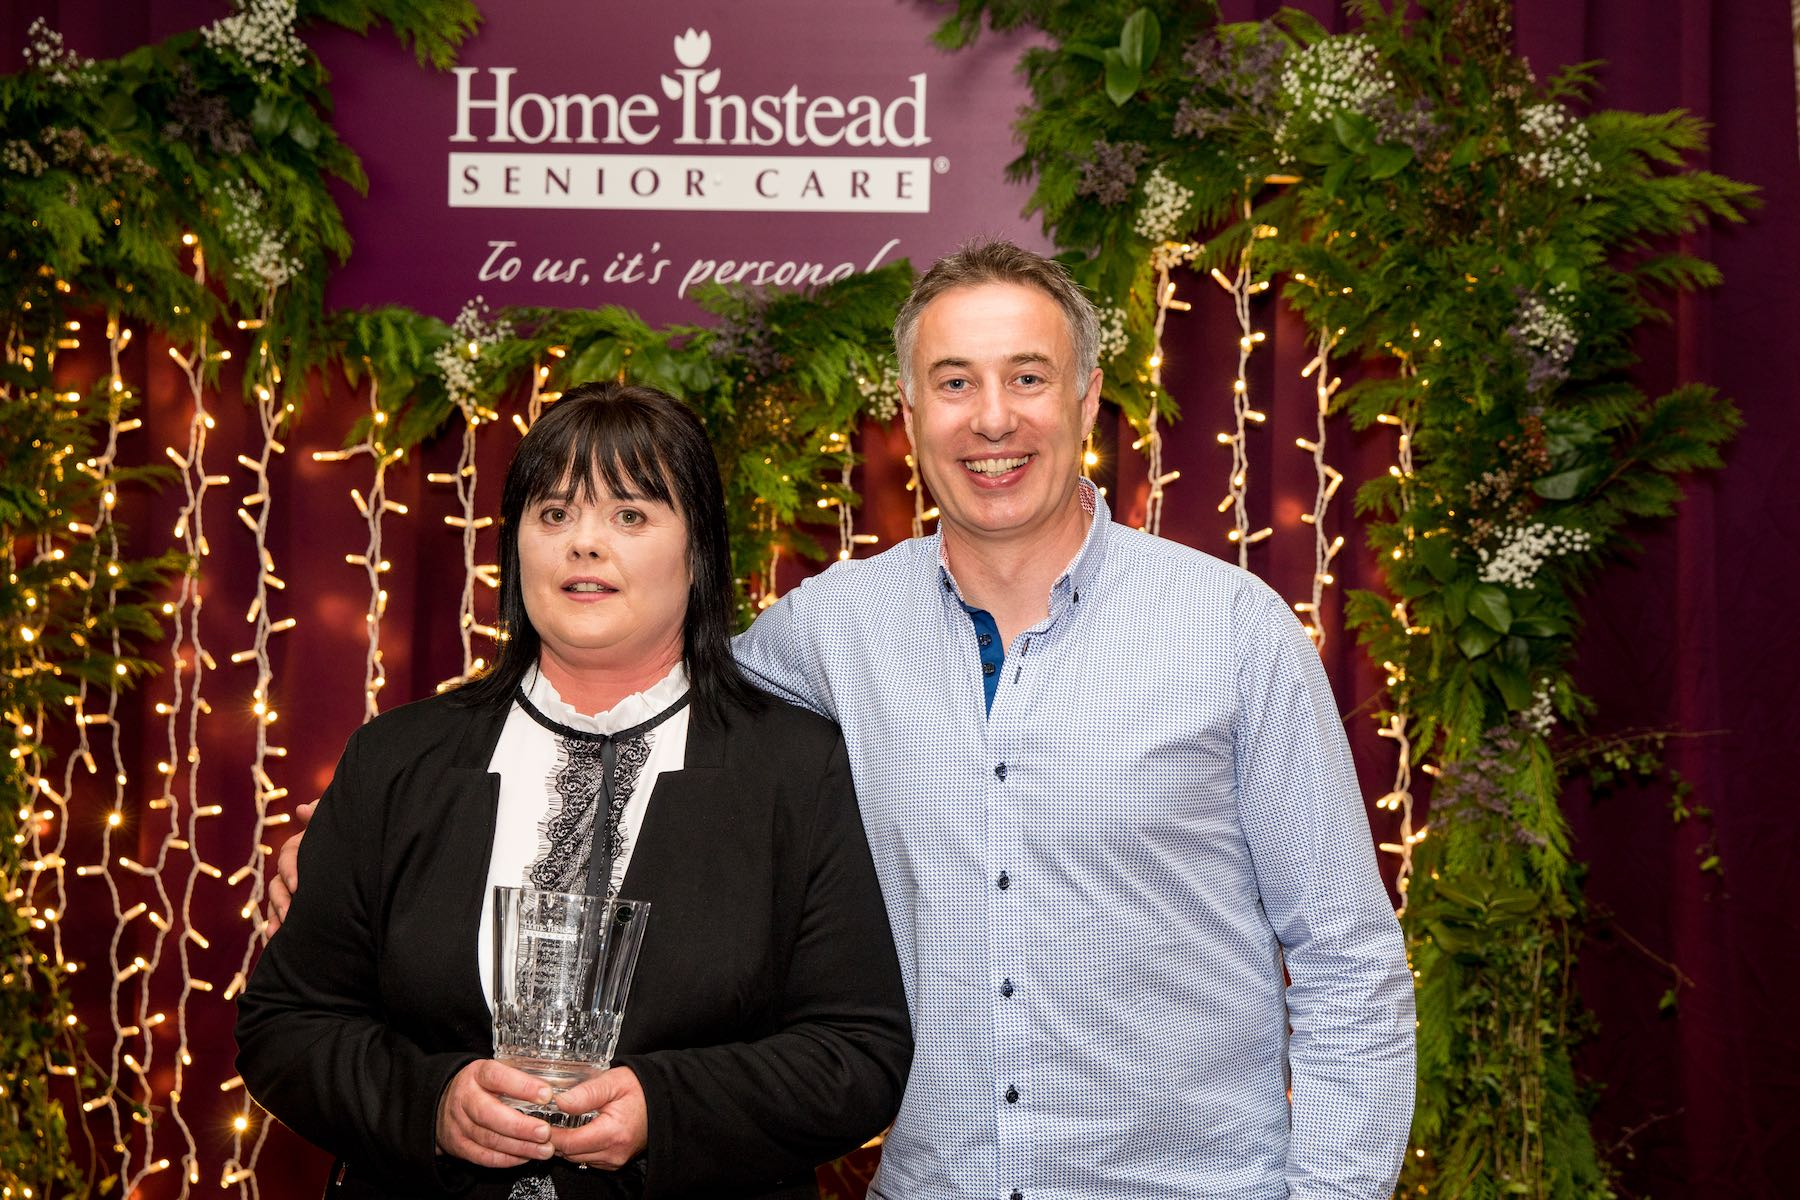 Bernie McHugh, Ulster CAREGiver of the Year 2019, and Martin Murphy, Owner of Home Instead Senior Care Donegal, at Home Instead Senior Care's CAREGiver of the Year Awards in Dublin on Saturday May 18 2019. Photo Credit: Conor Healy